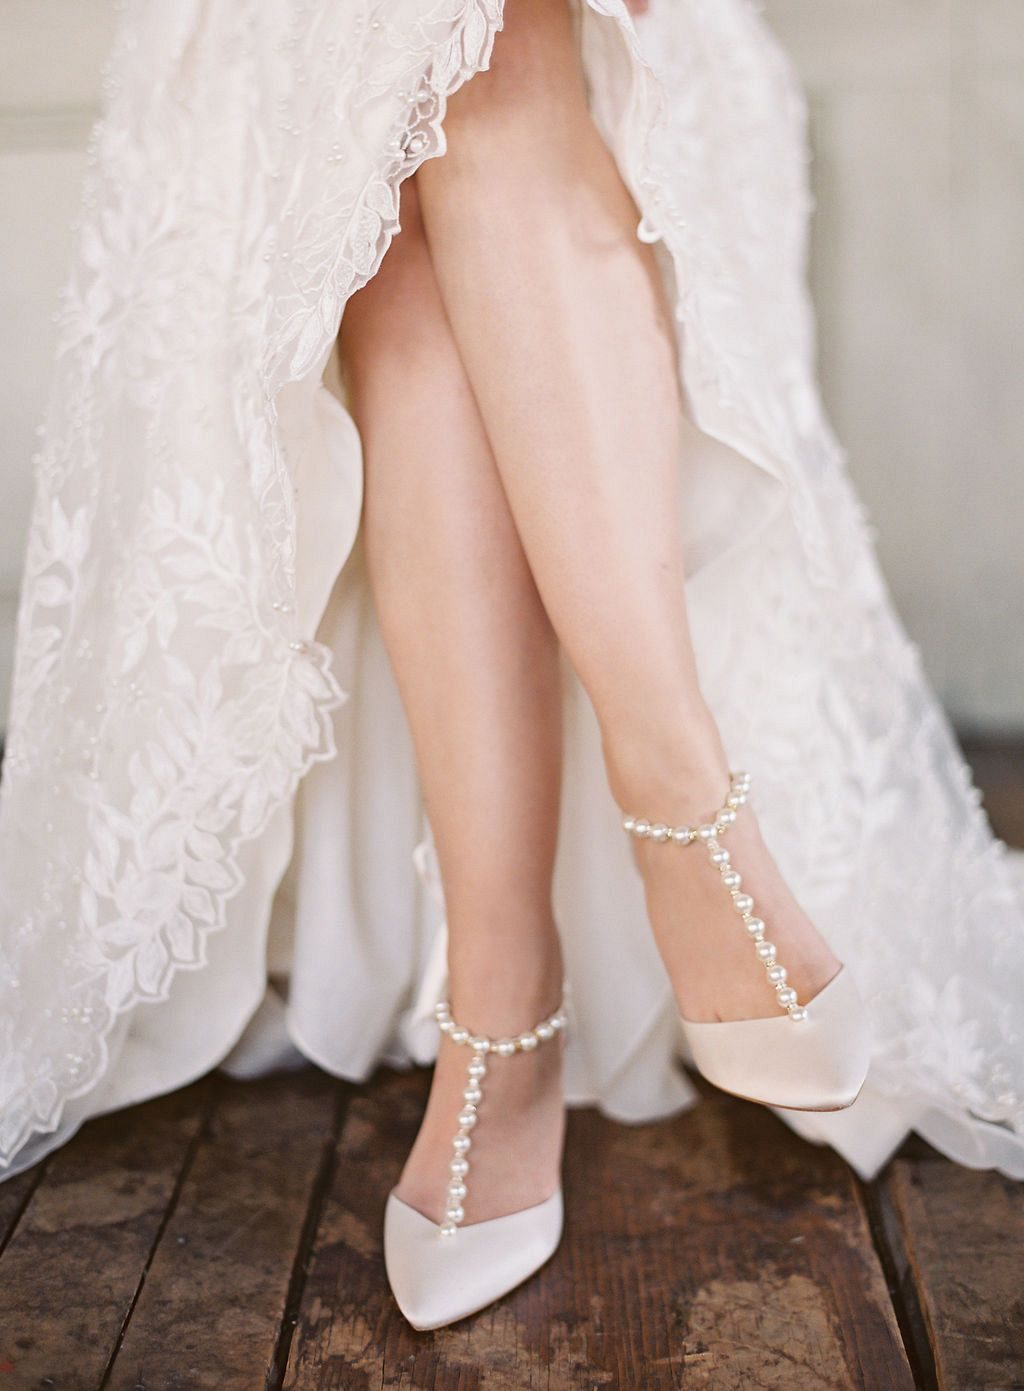 See More Beautiful Wedding Shoes Like This At Millennialswedding Club Bridal Shoes Wedding Shoes Bride Bridal Shoes Wedding Shoes Flats [ 1391 x 1024 Pixel ]